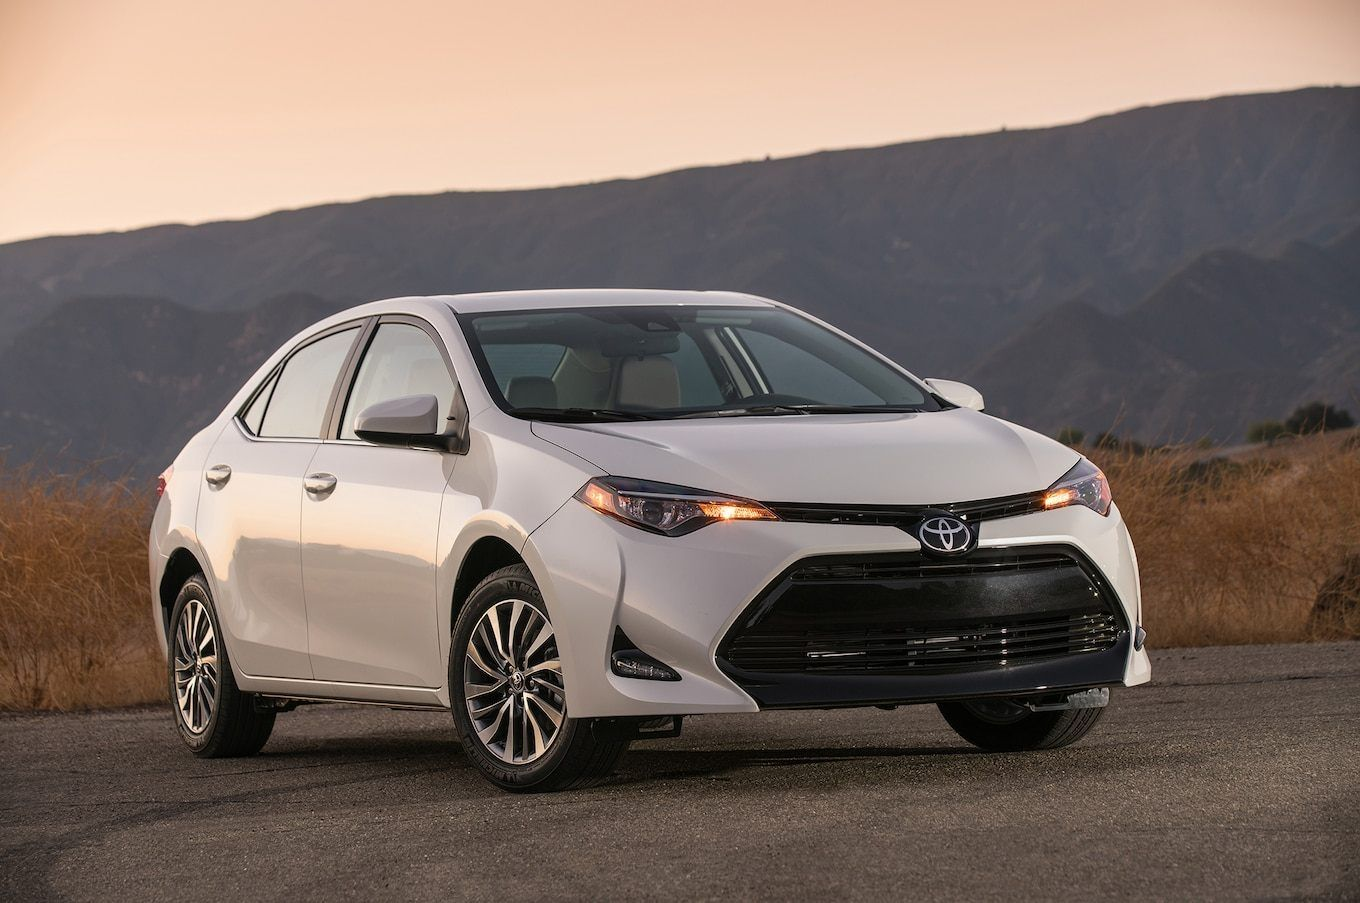 2018 Toyota Corolla Redesign And Price At Car Industry News Find Browse